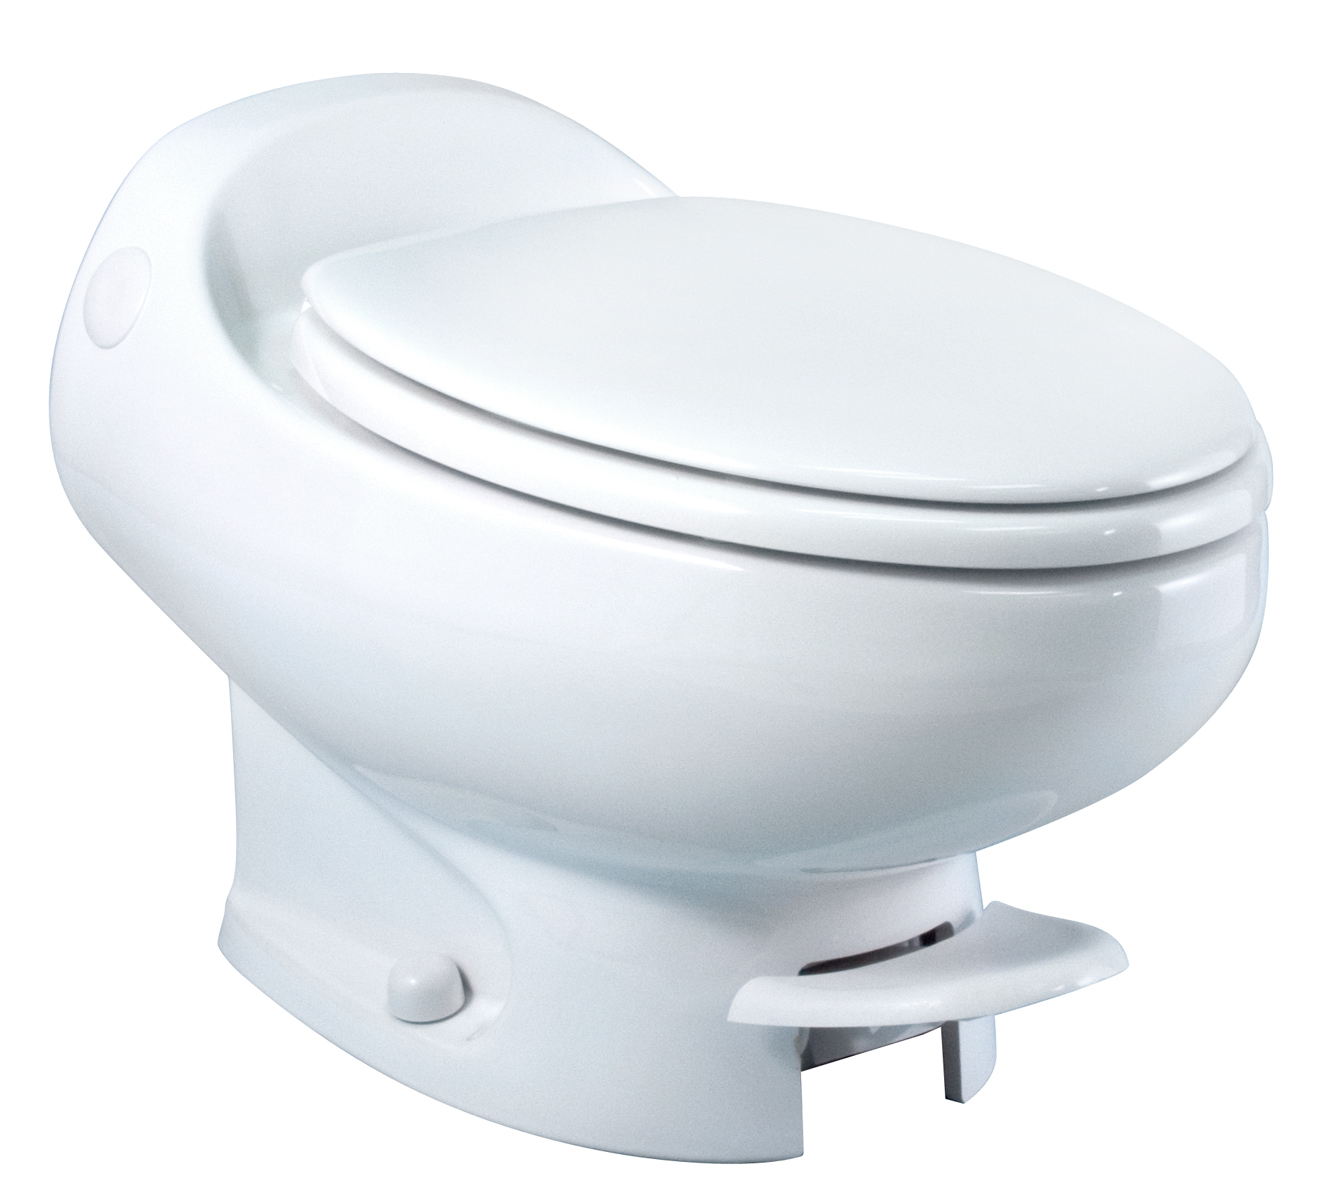 Aria Classic All China Rv Toilet With Single Pedal Flush